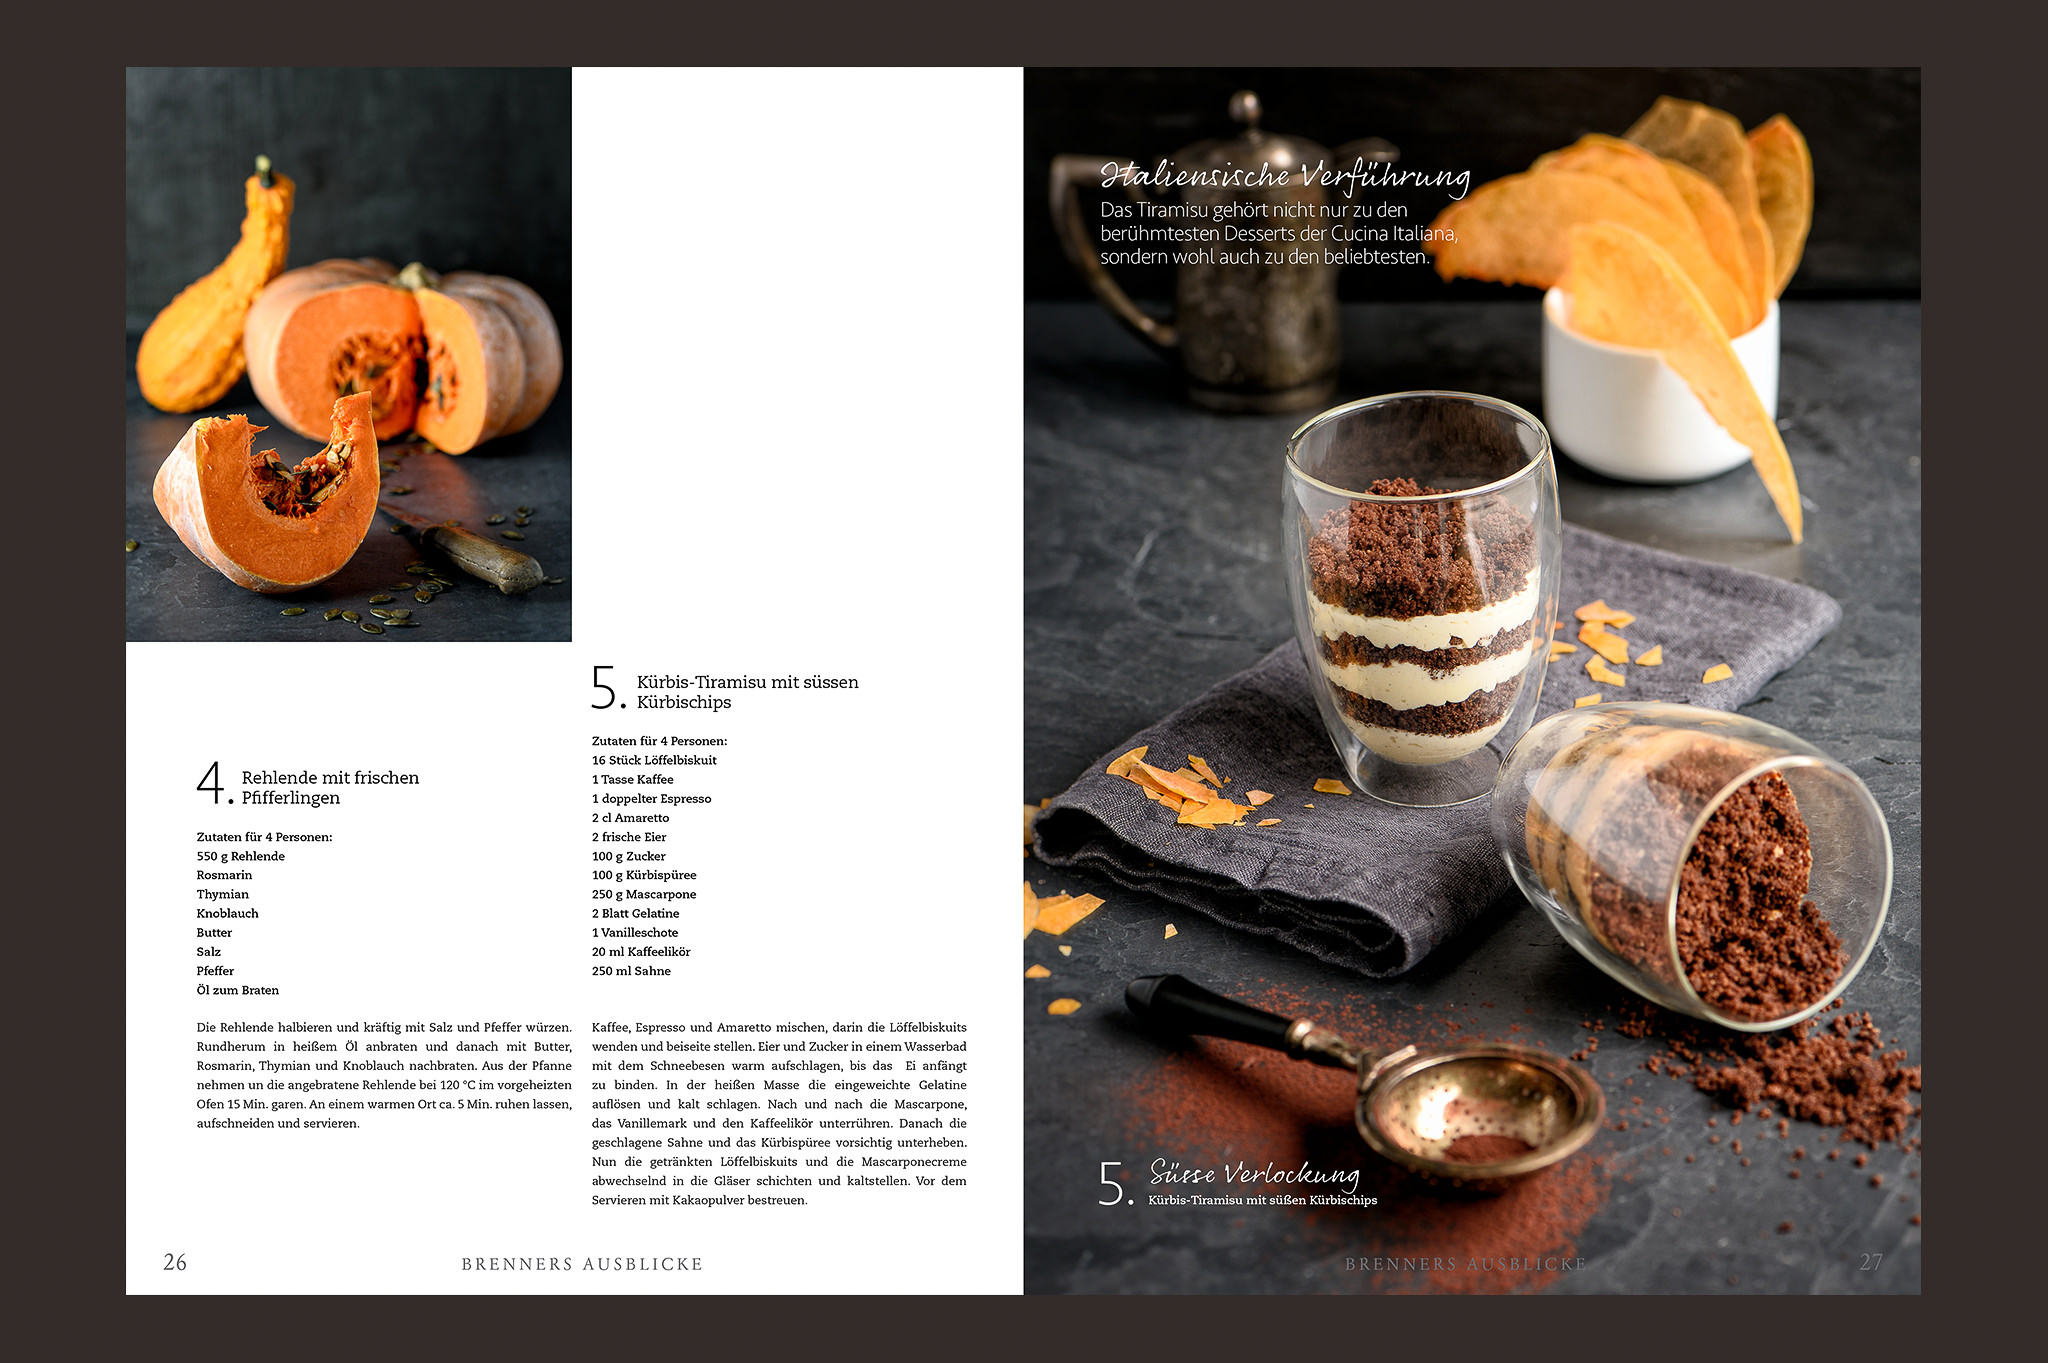 Tear Sheet Brenners Ausblicke Food 4